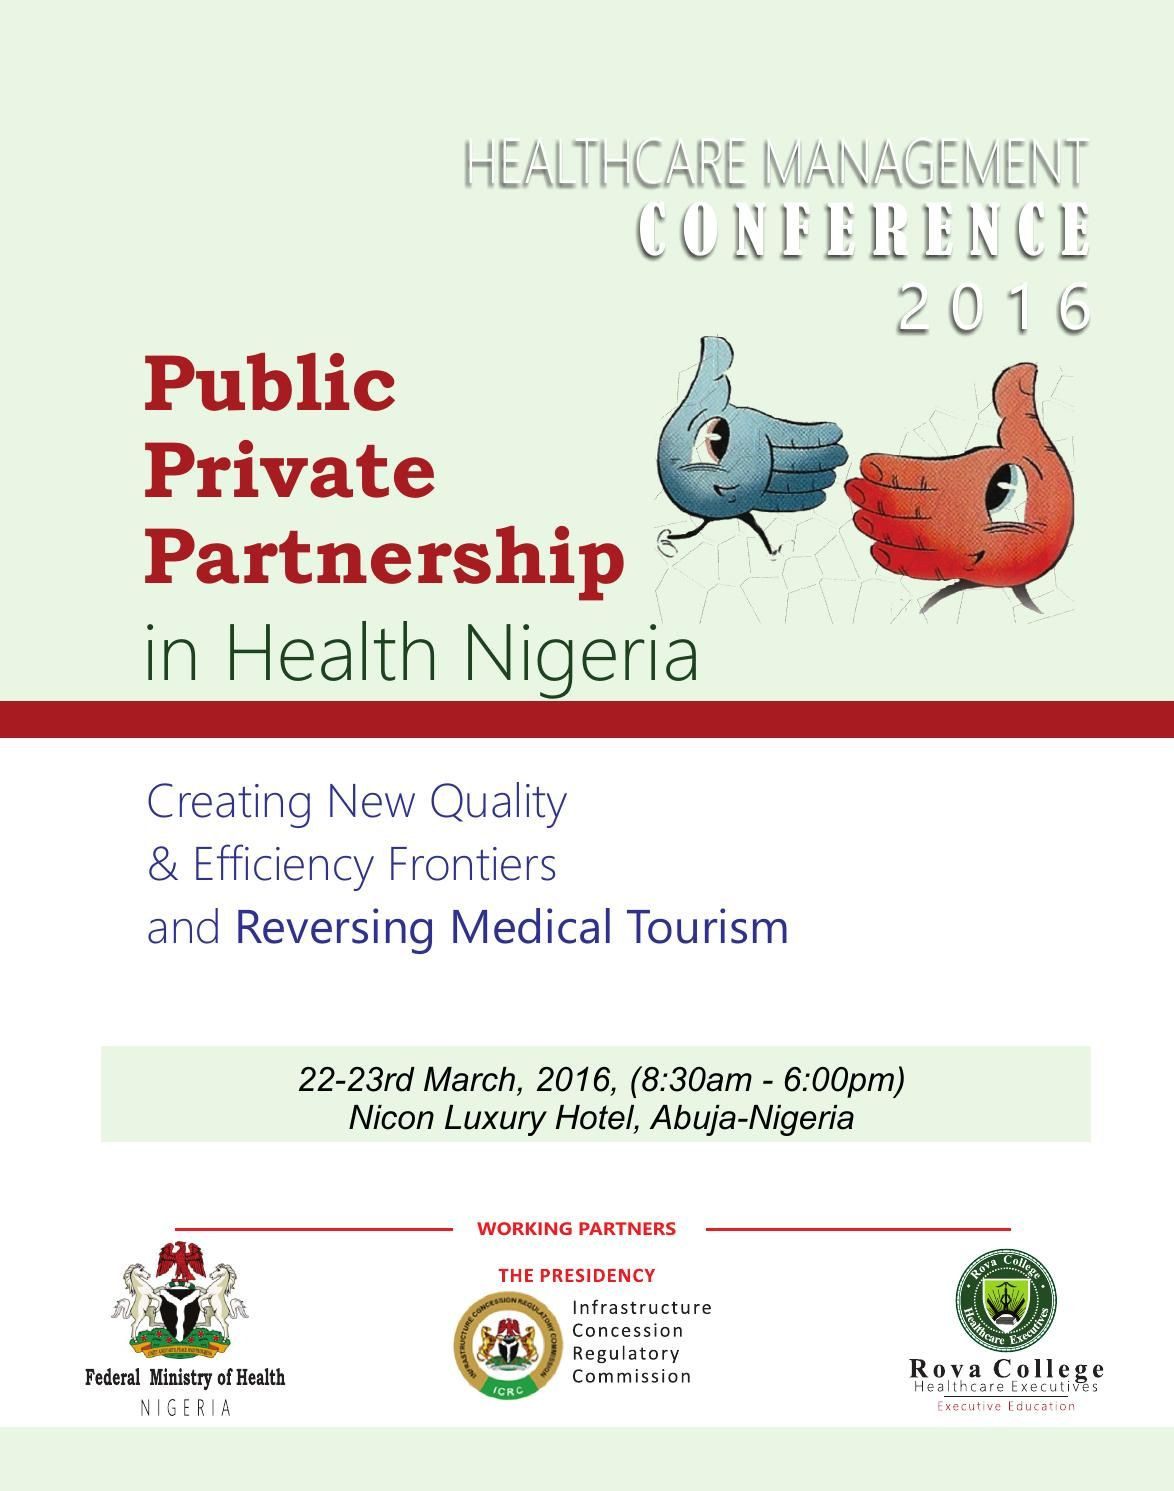 PPPs in Health Nigeria Public private partnership